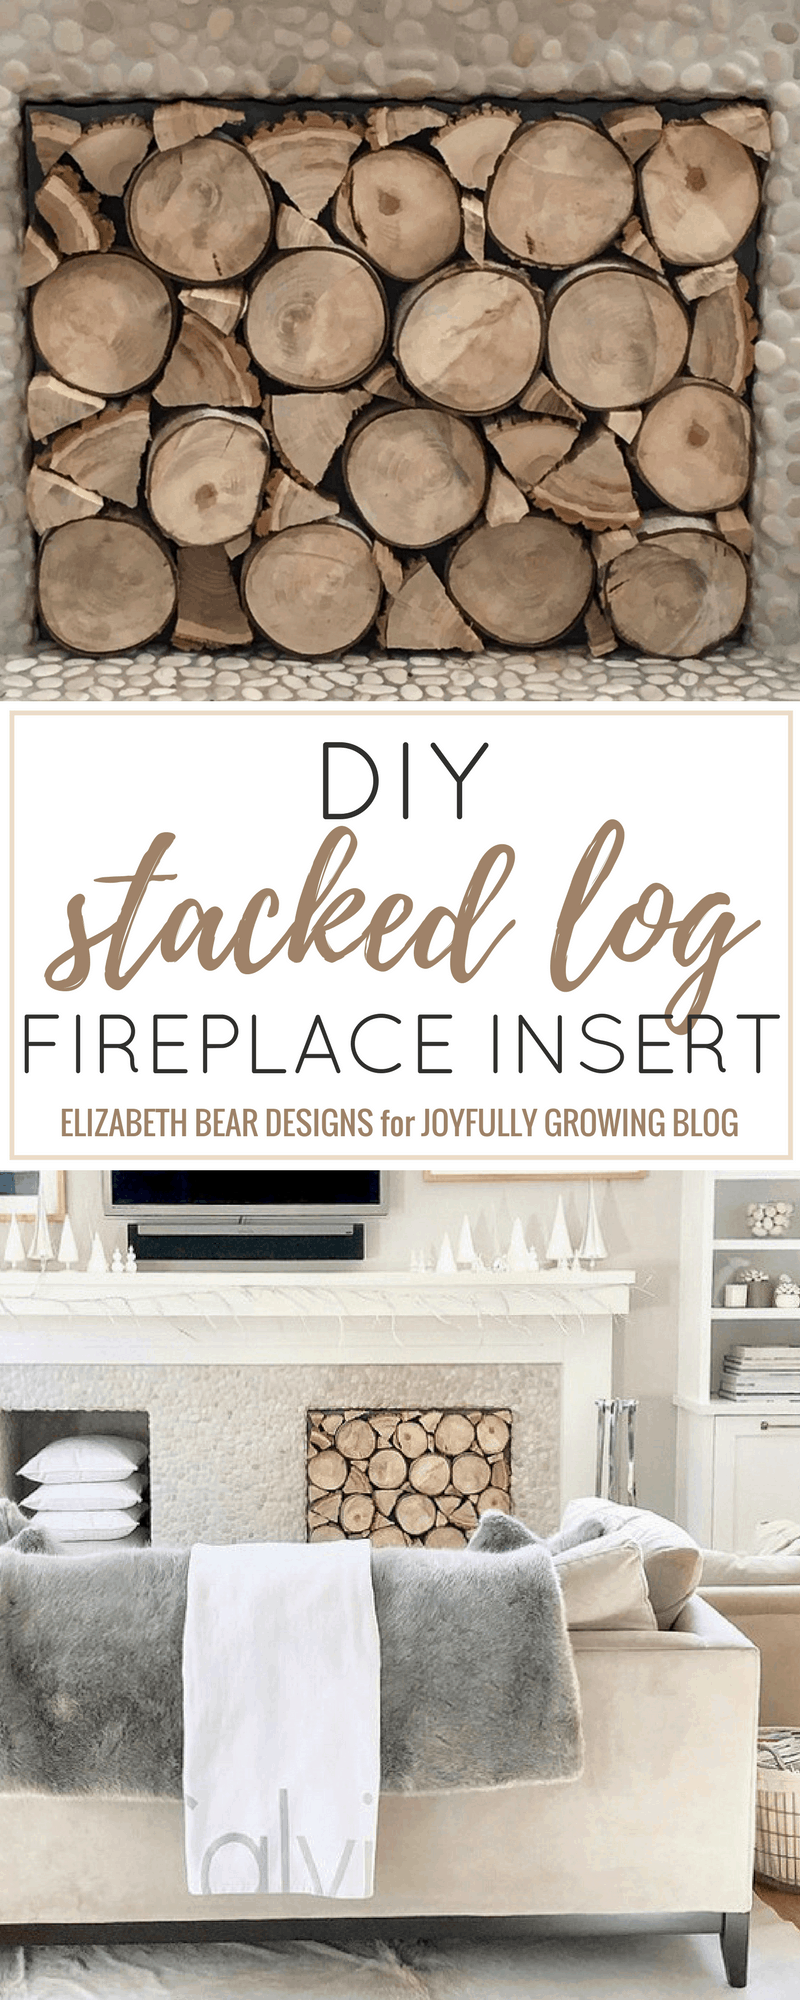 DIY stacked log fireplace insert